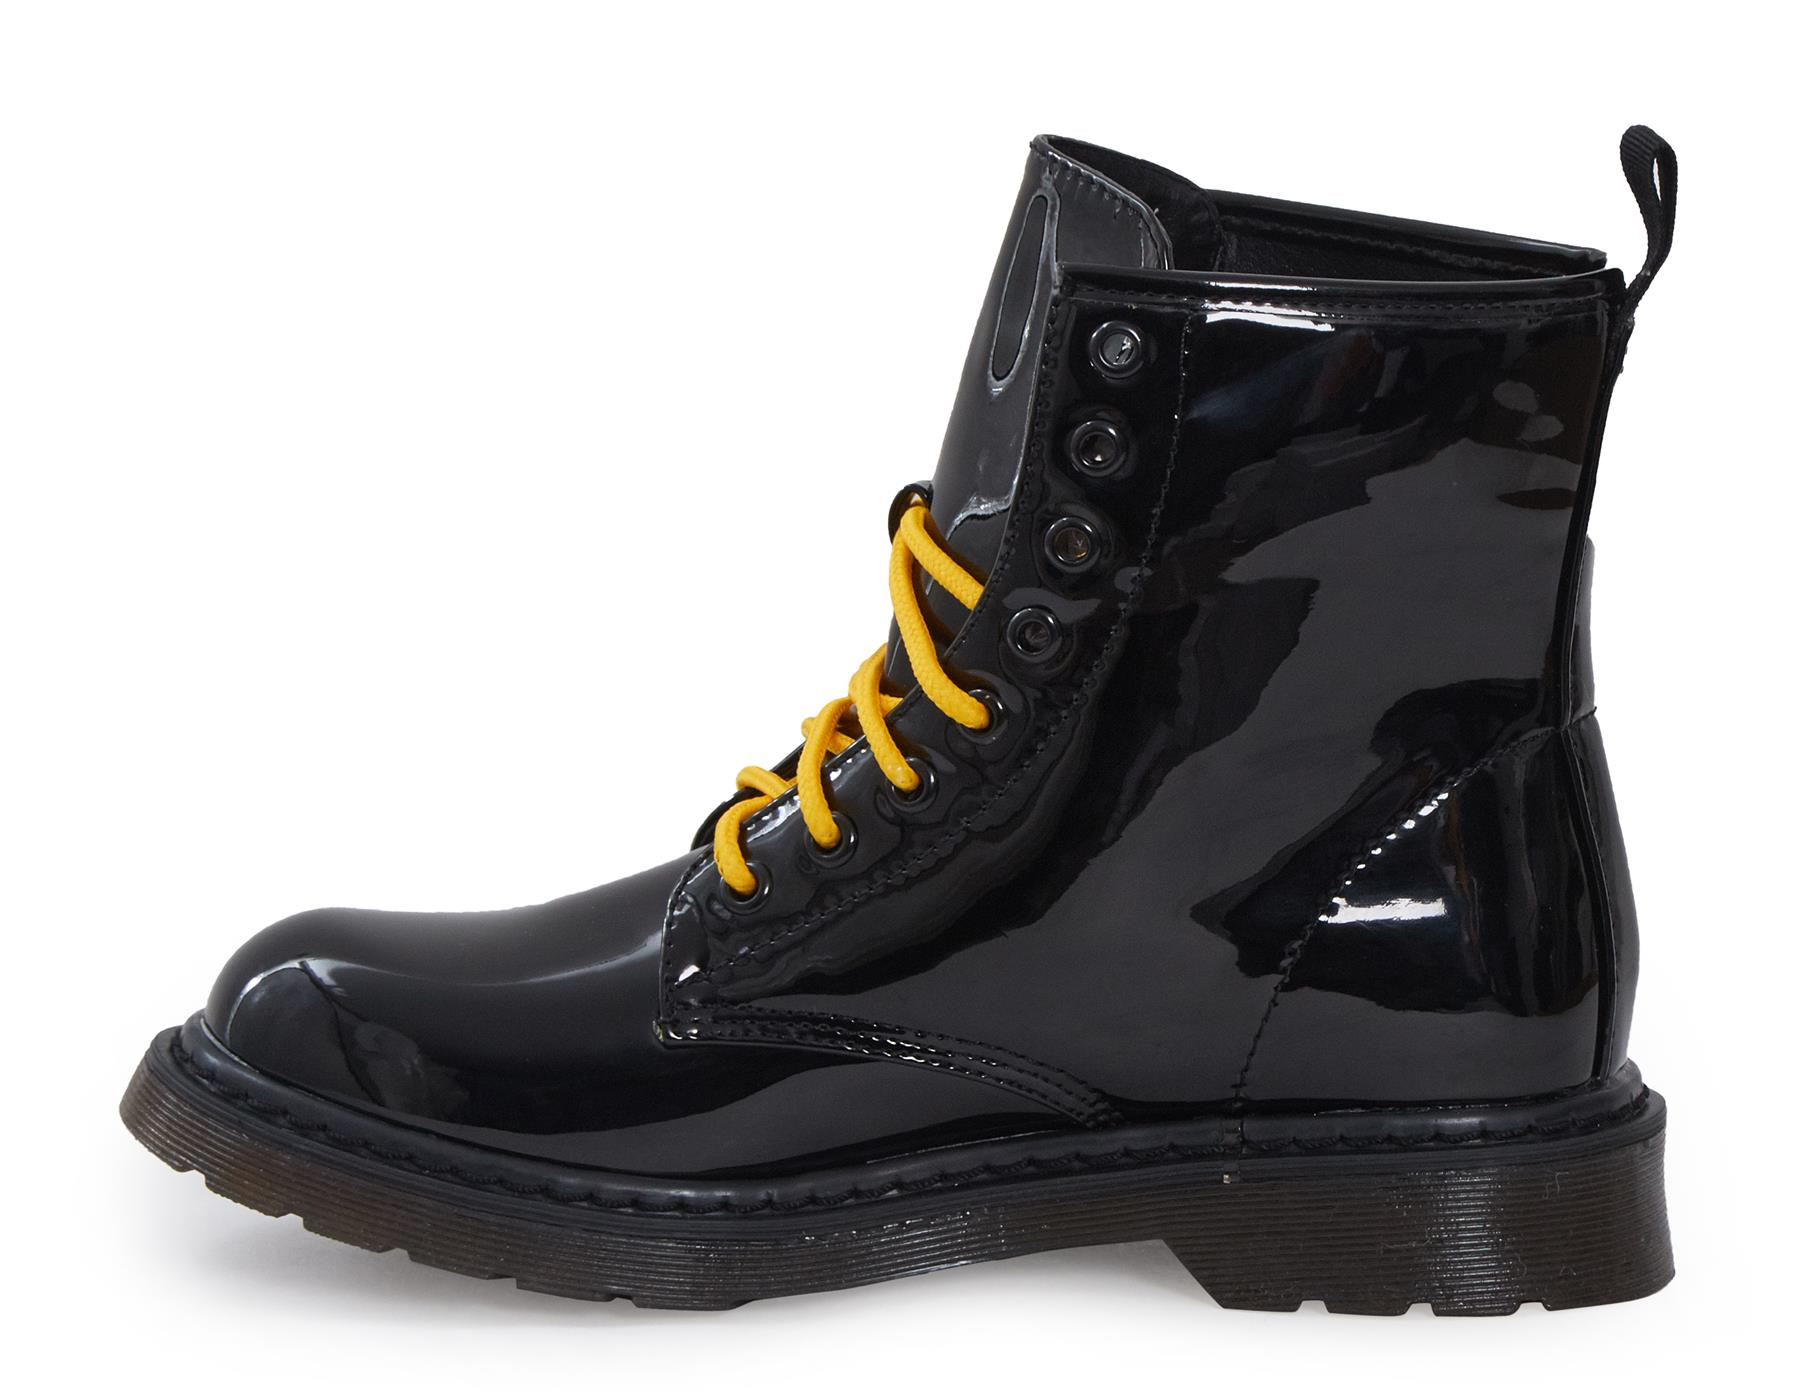 Shelikes-Womens-Ankle-Boots-Vintage-Combat-Army-Flat-Lace-Up-Work-Military-Biker thumbnail 11